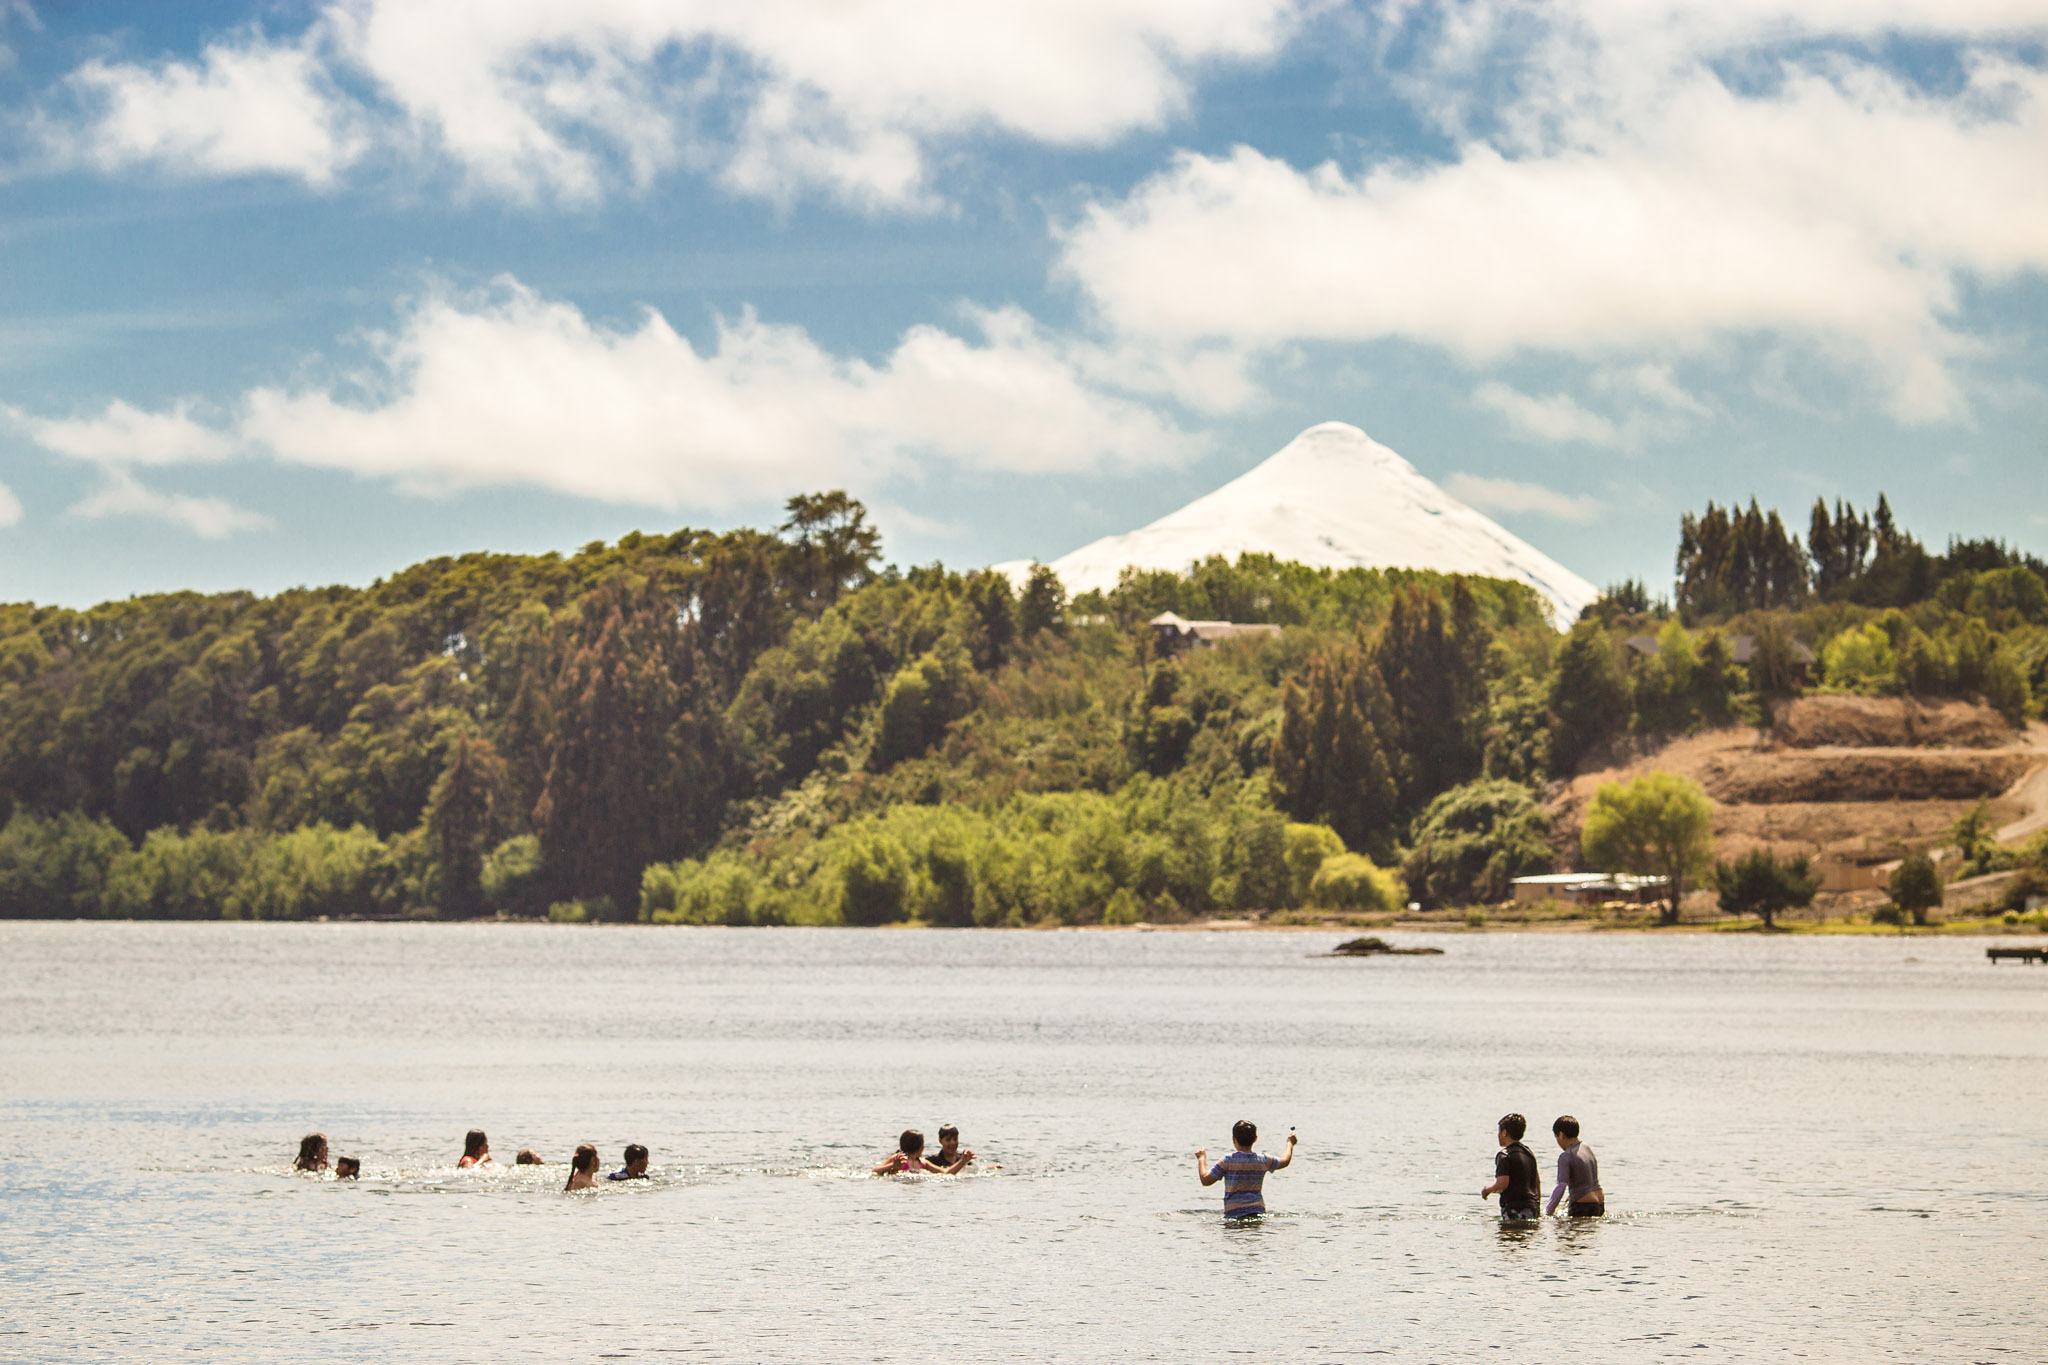 There aren't many countries where you can swim or windsurf on a lake, with a backdrop of a volcano